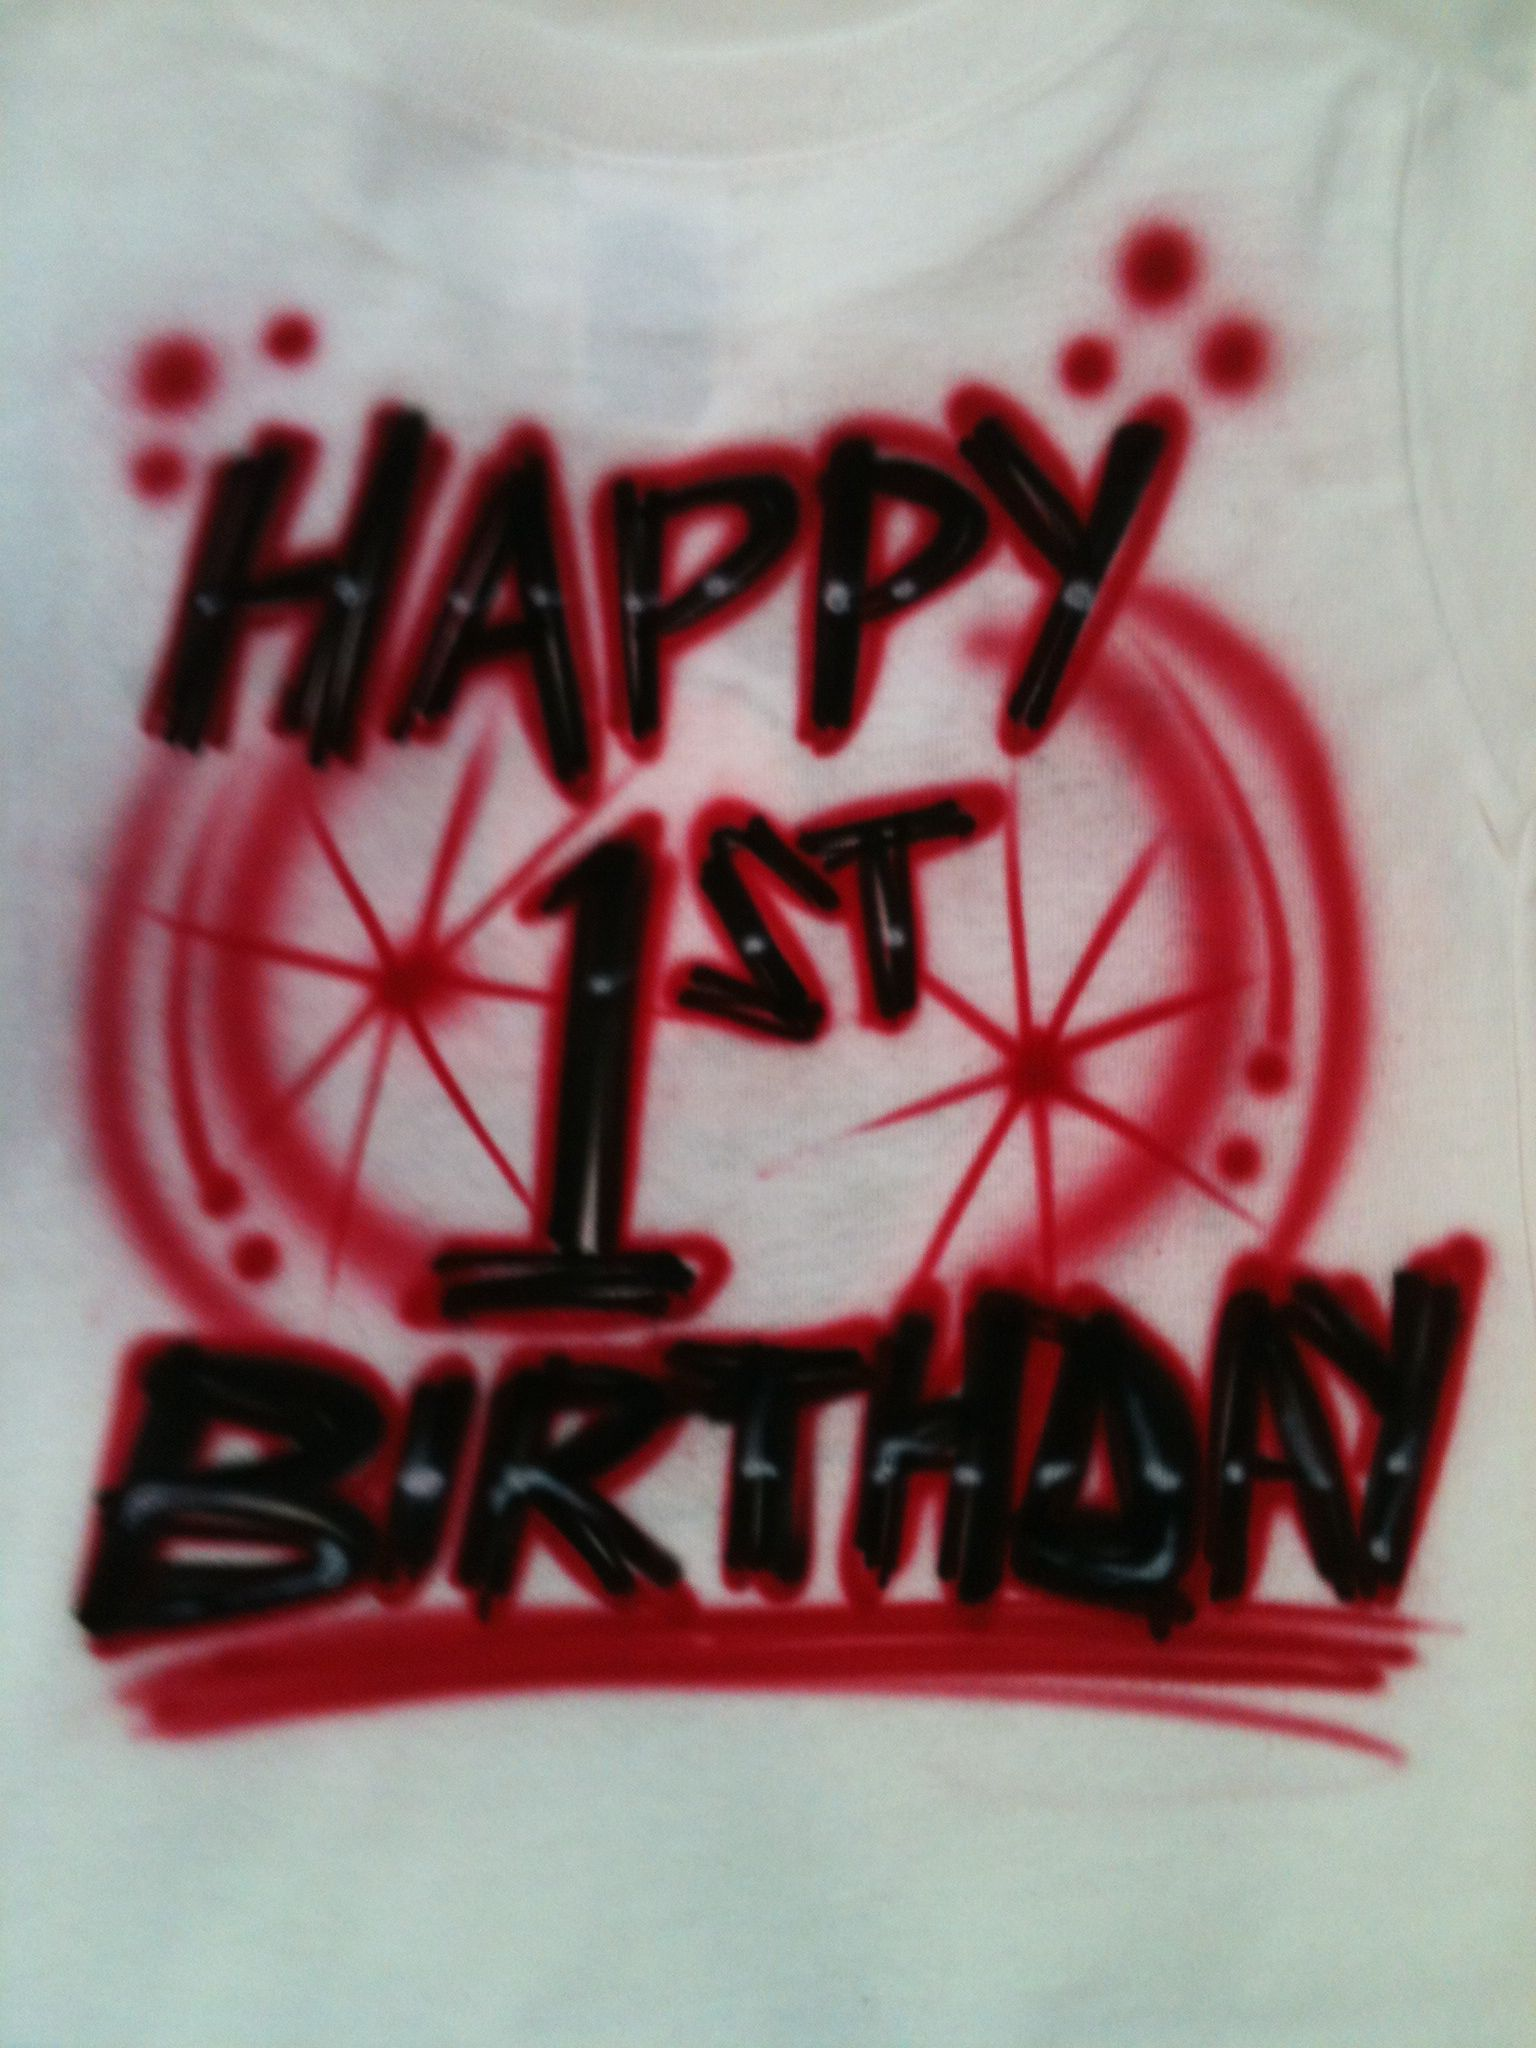 Hurry In Do You Need A Happy Birthday Airbrush Shirt Air Graphics 610 921 8300 We Are Located The Berkshire Mall Wyomissing PA